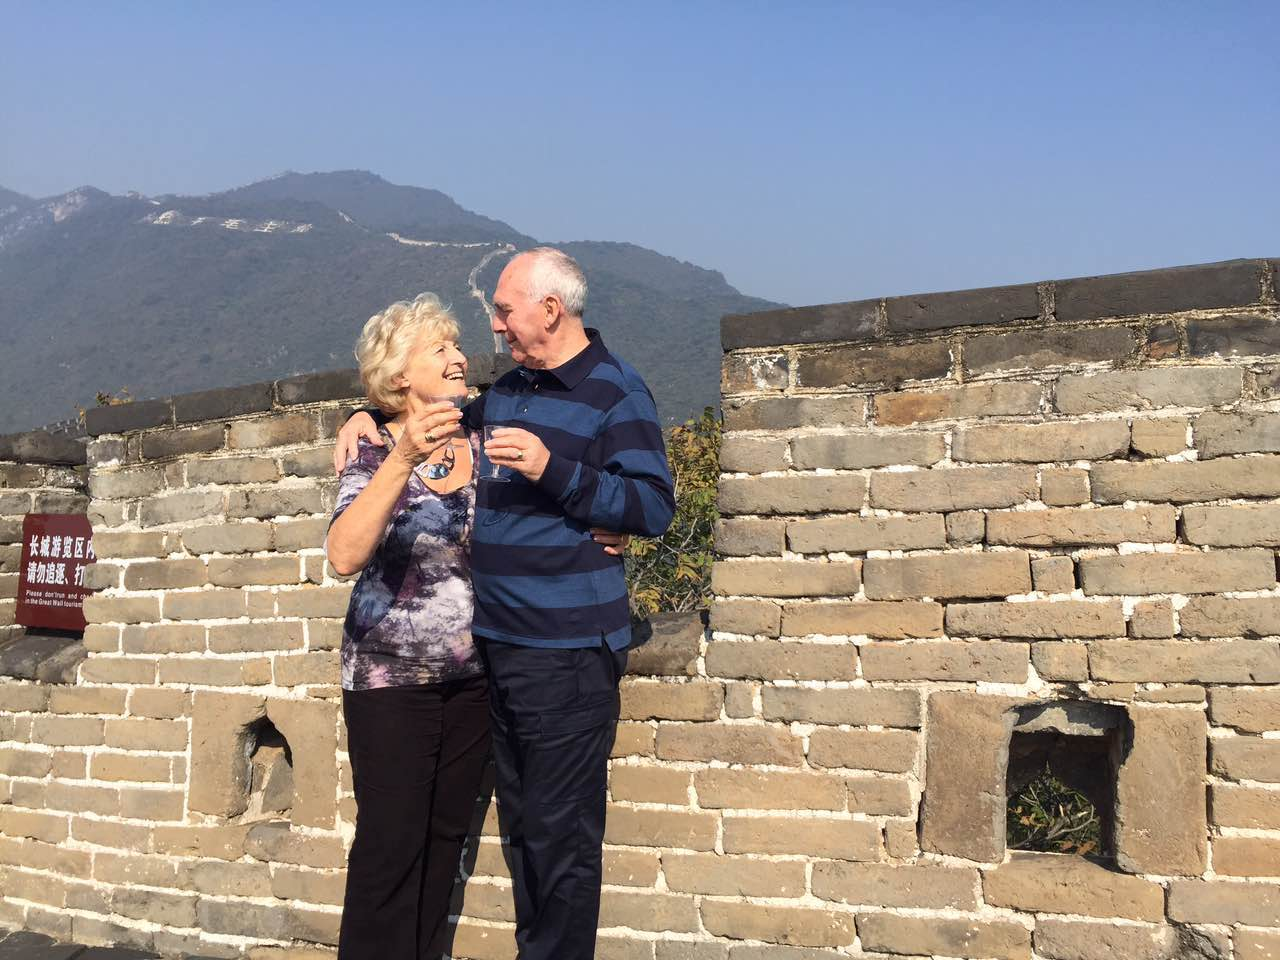 Customers drinking sparkling wine on the Great Wall, Deluxe